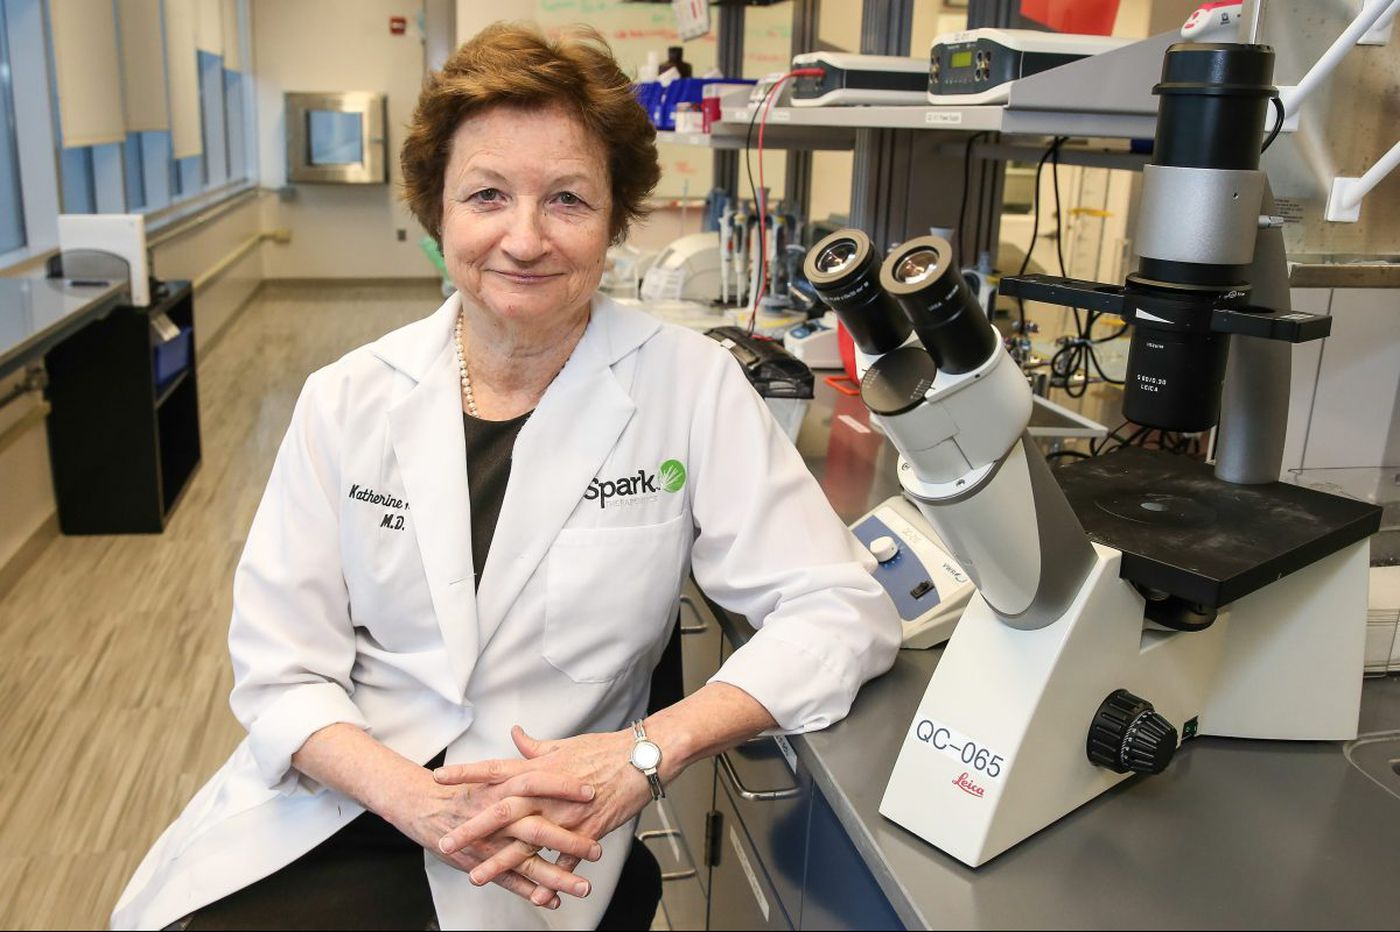 An $872 million week for Philly biotech companies